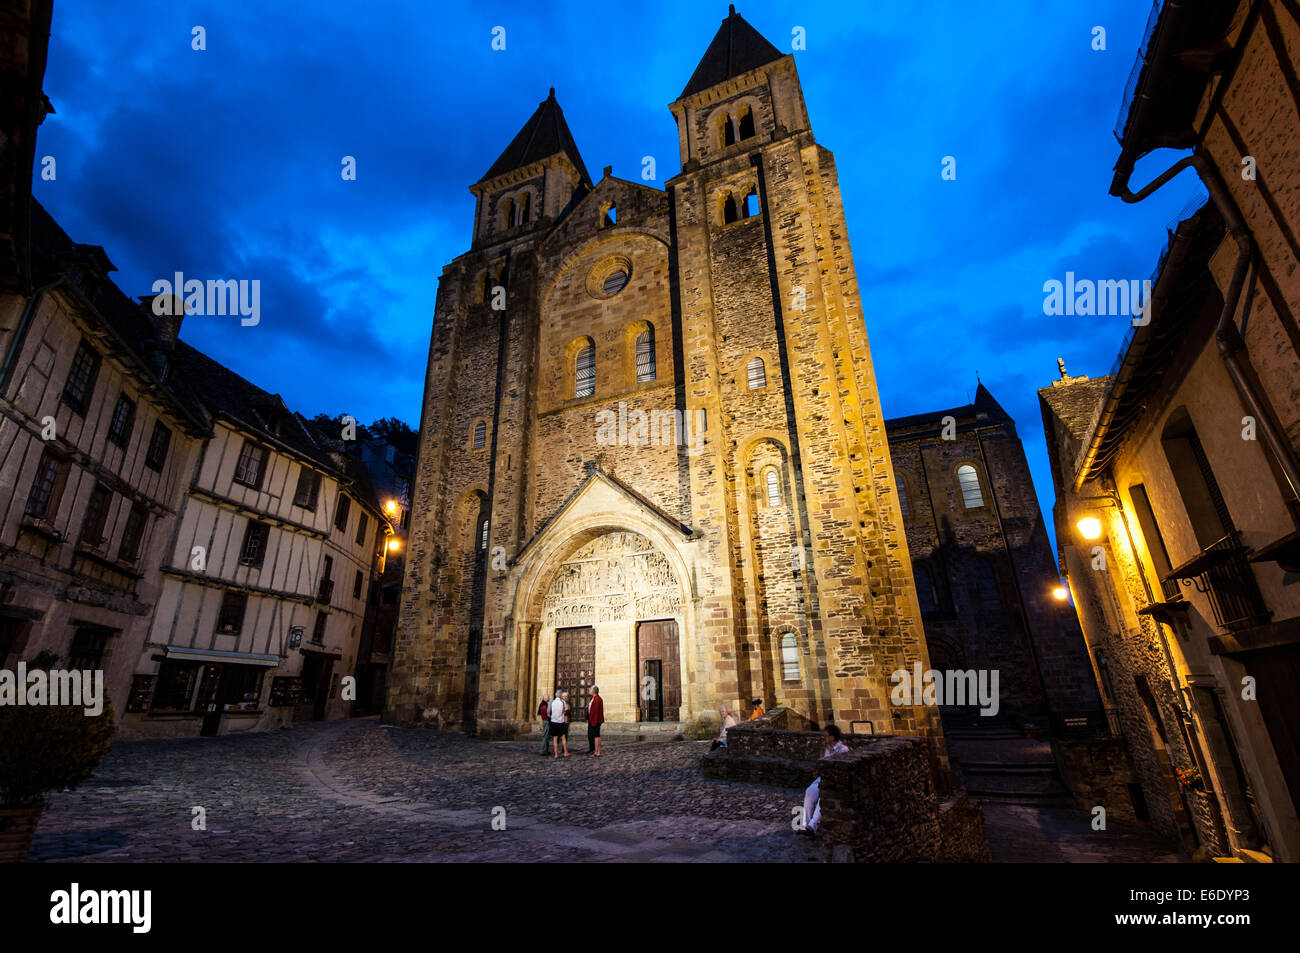 The most beautiful village in France, Conques in the middle of Camino Santiago - Stock Image